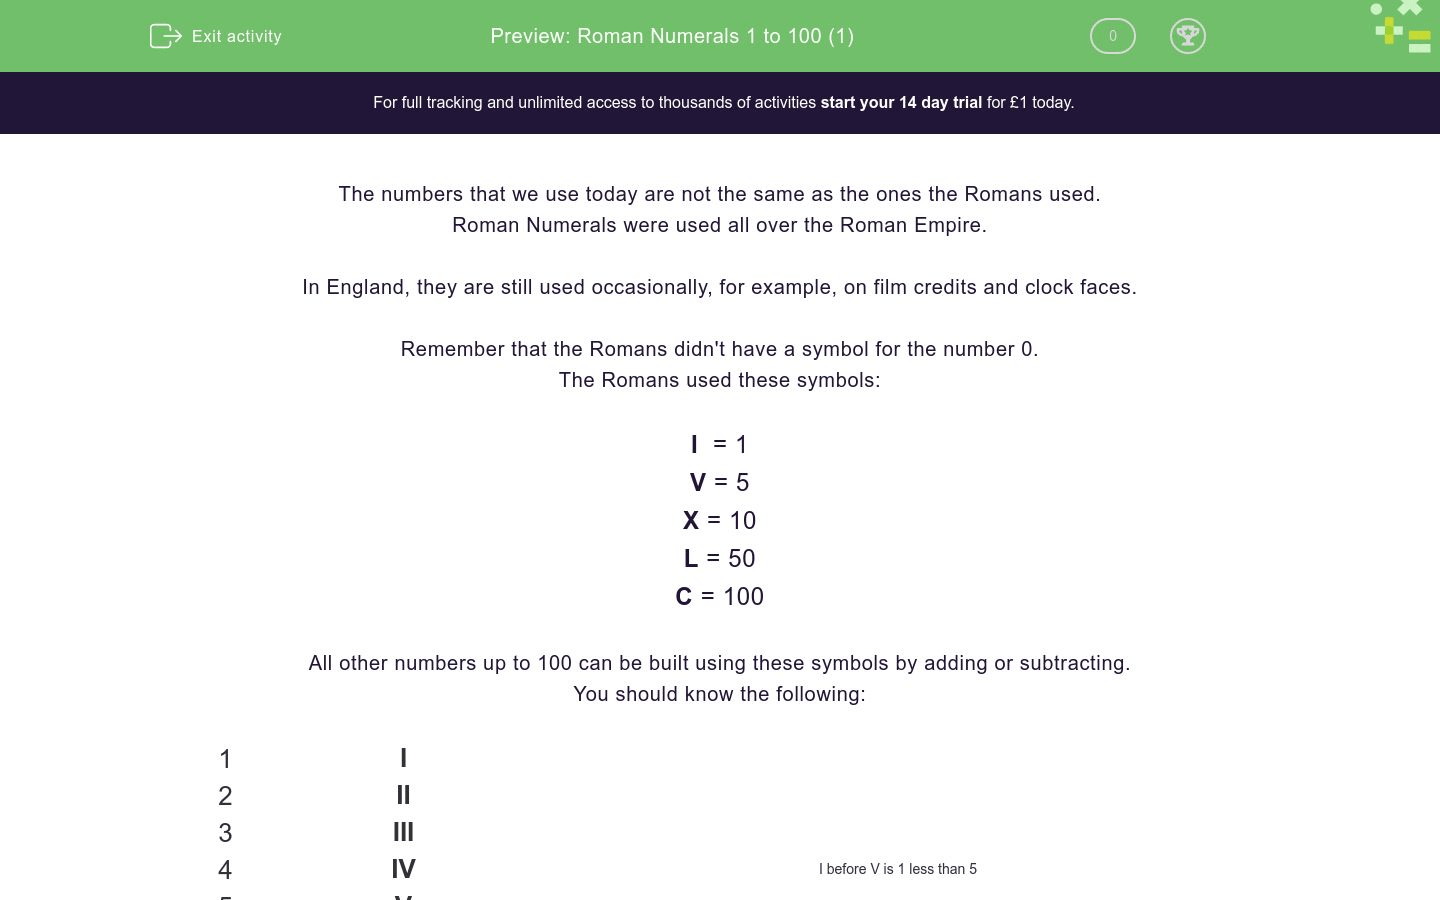 Roman Numerals 1 To 100 1 Worksheet